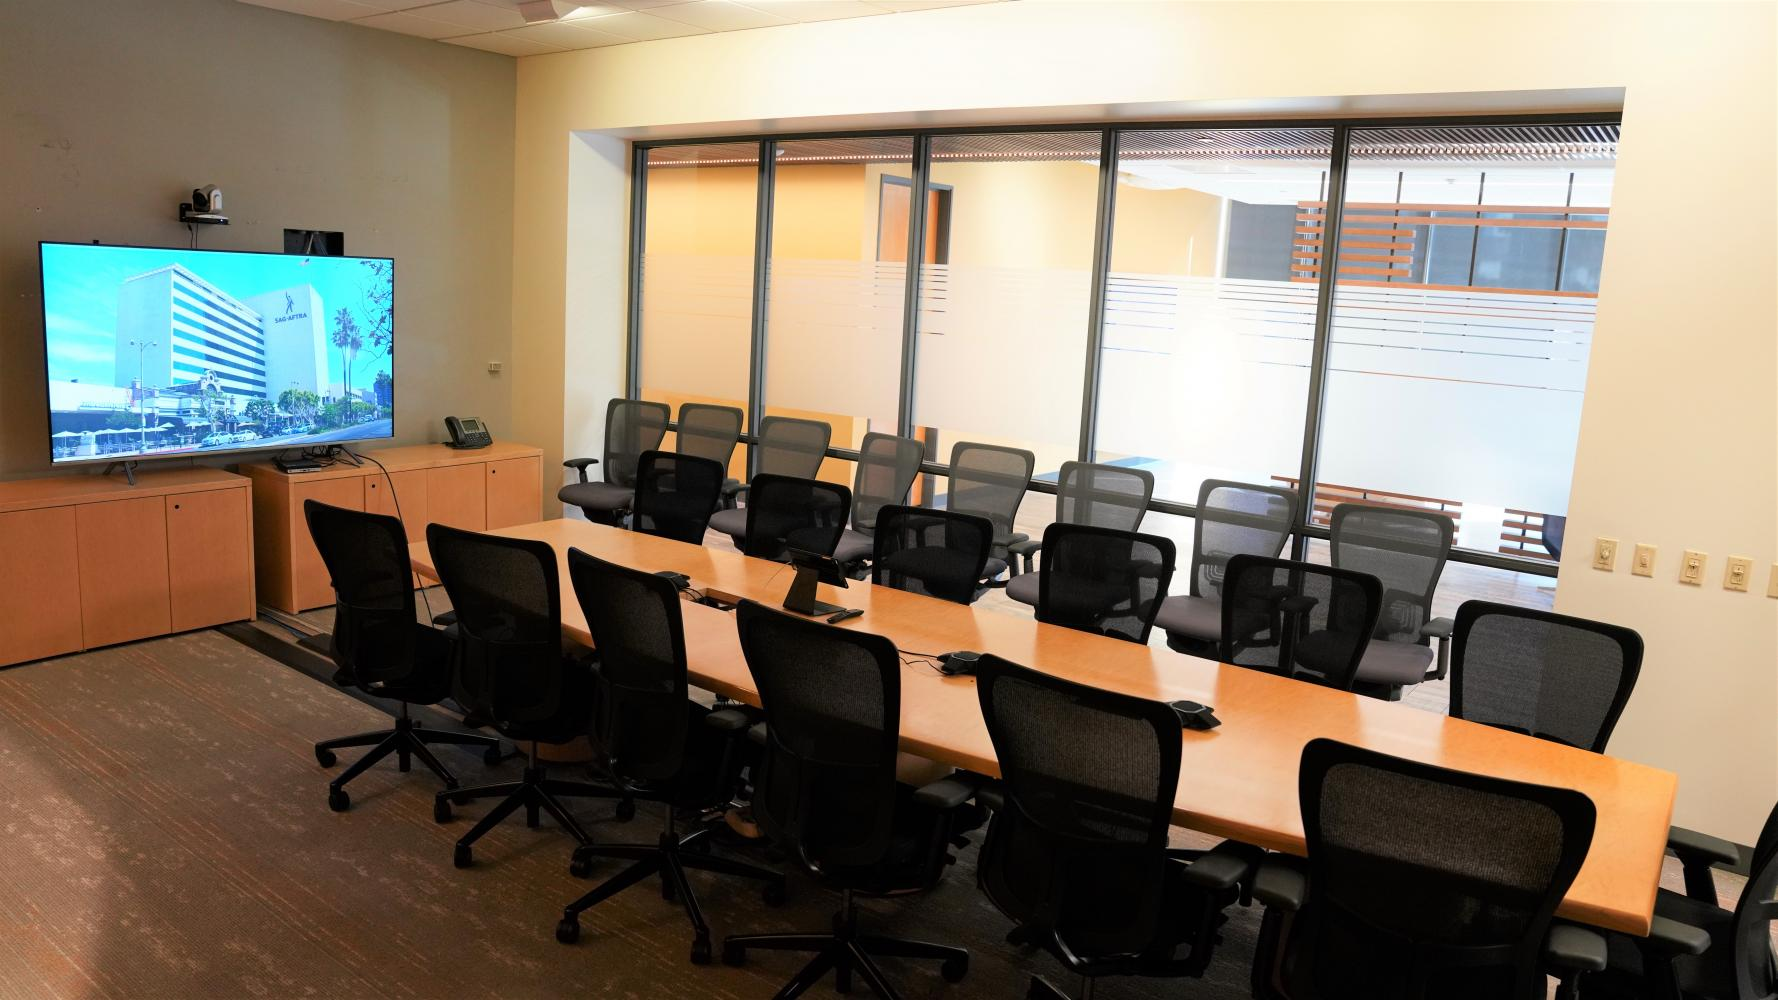 Conference Room with a large table in the middle and chairs all around.